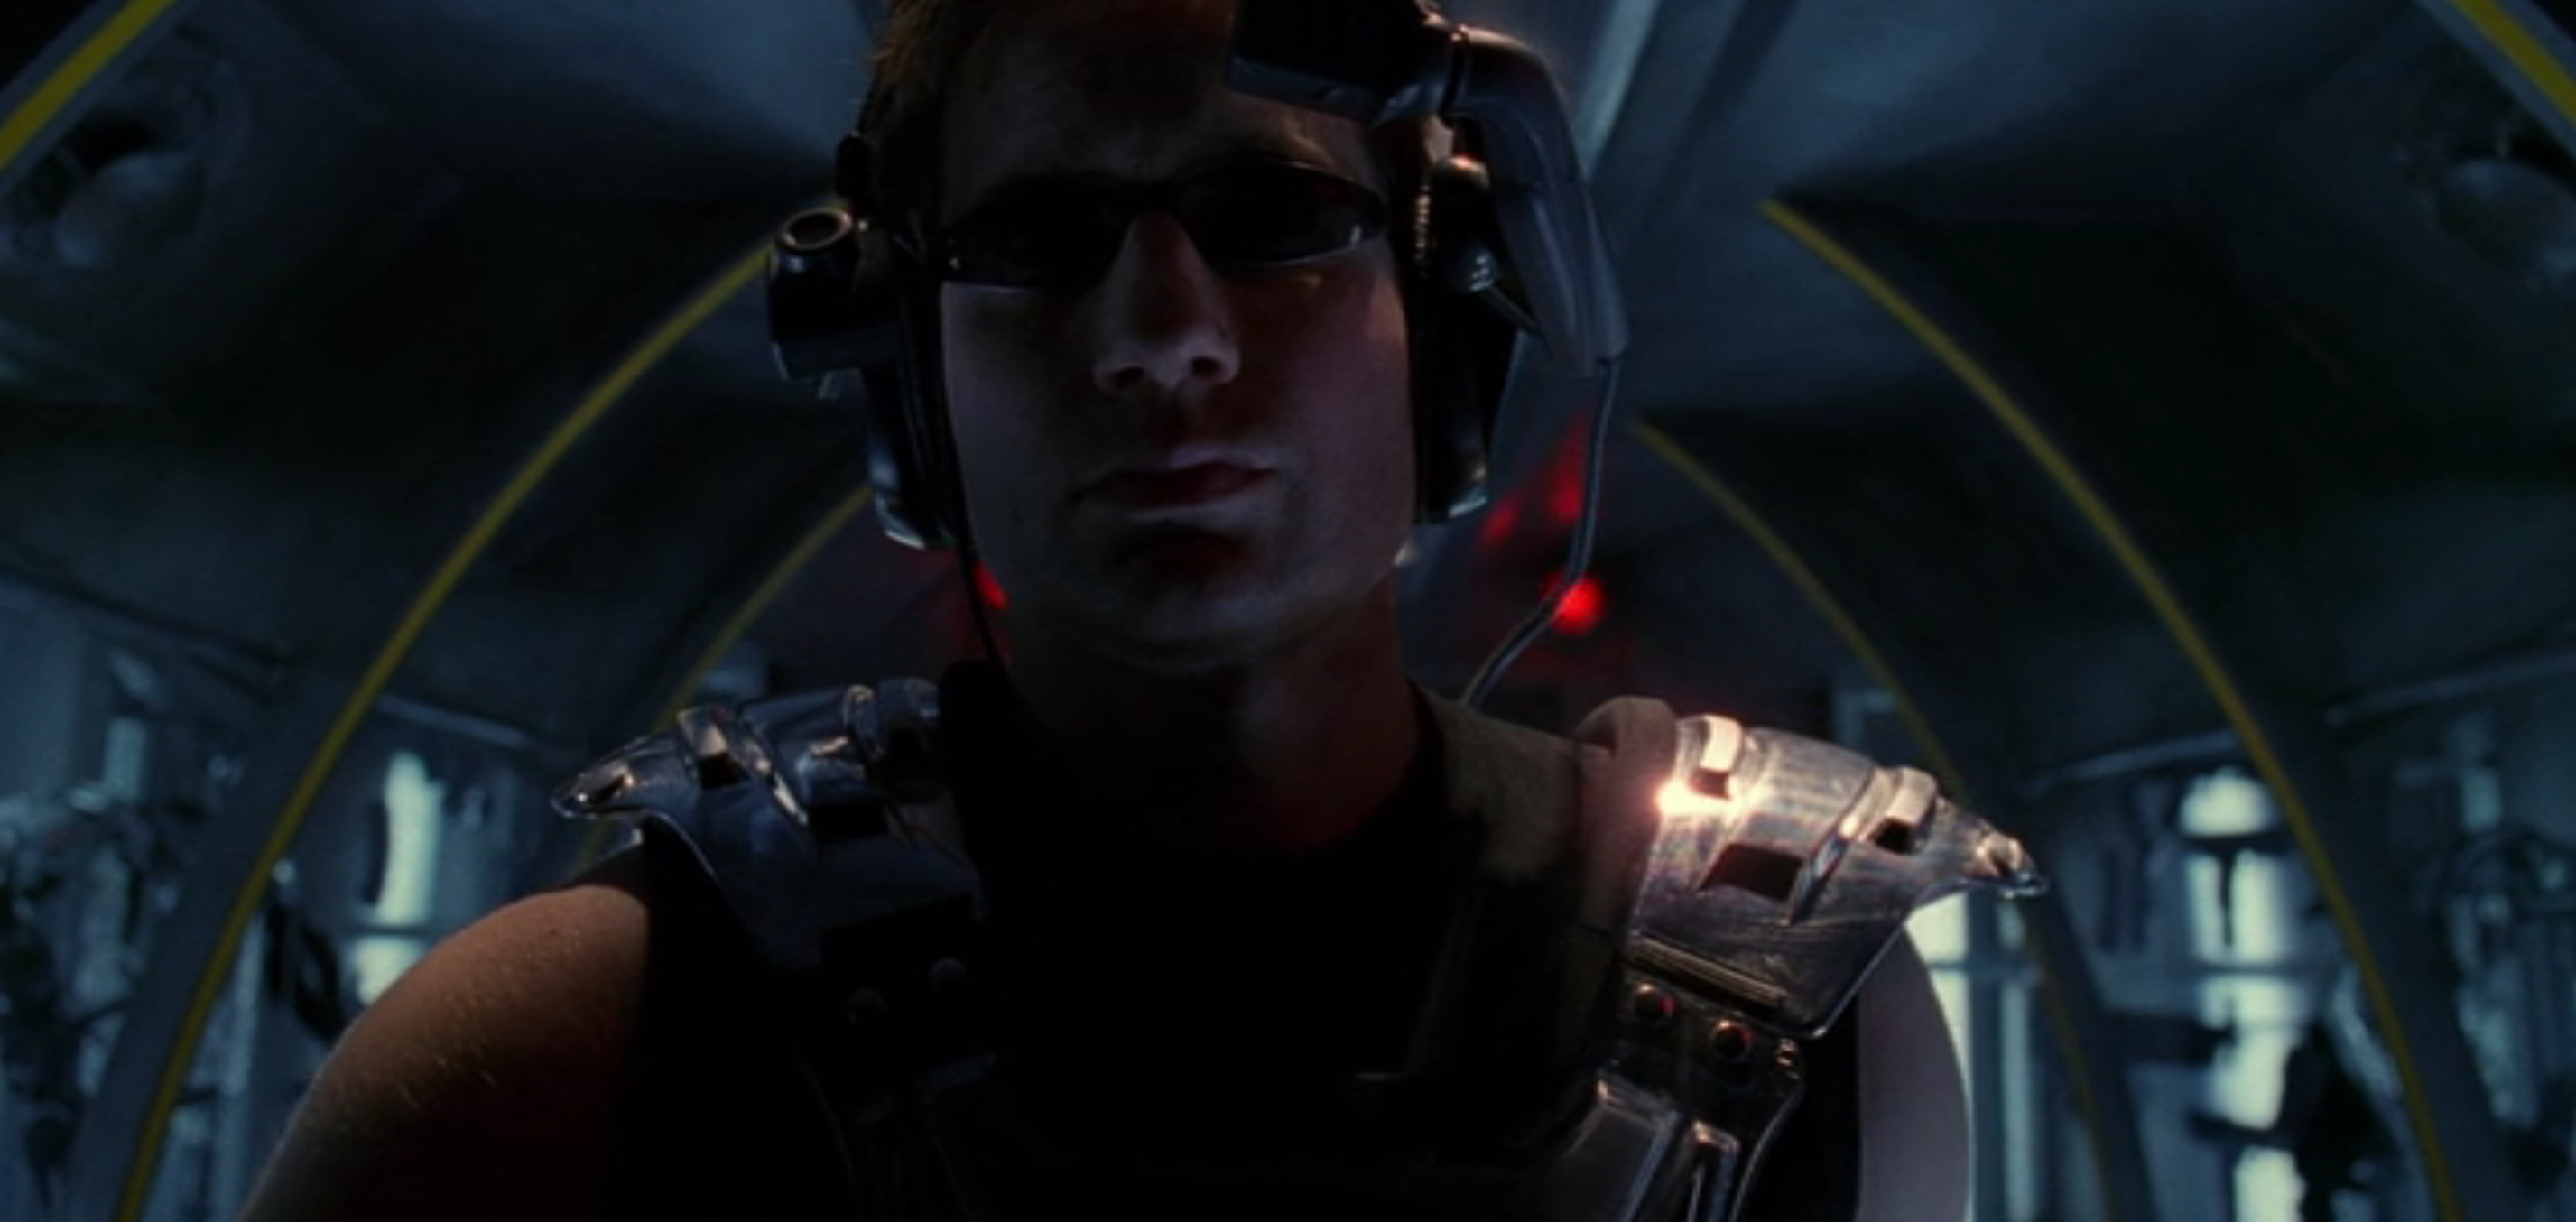 the x-files video games